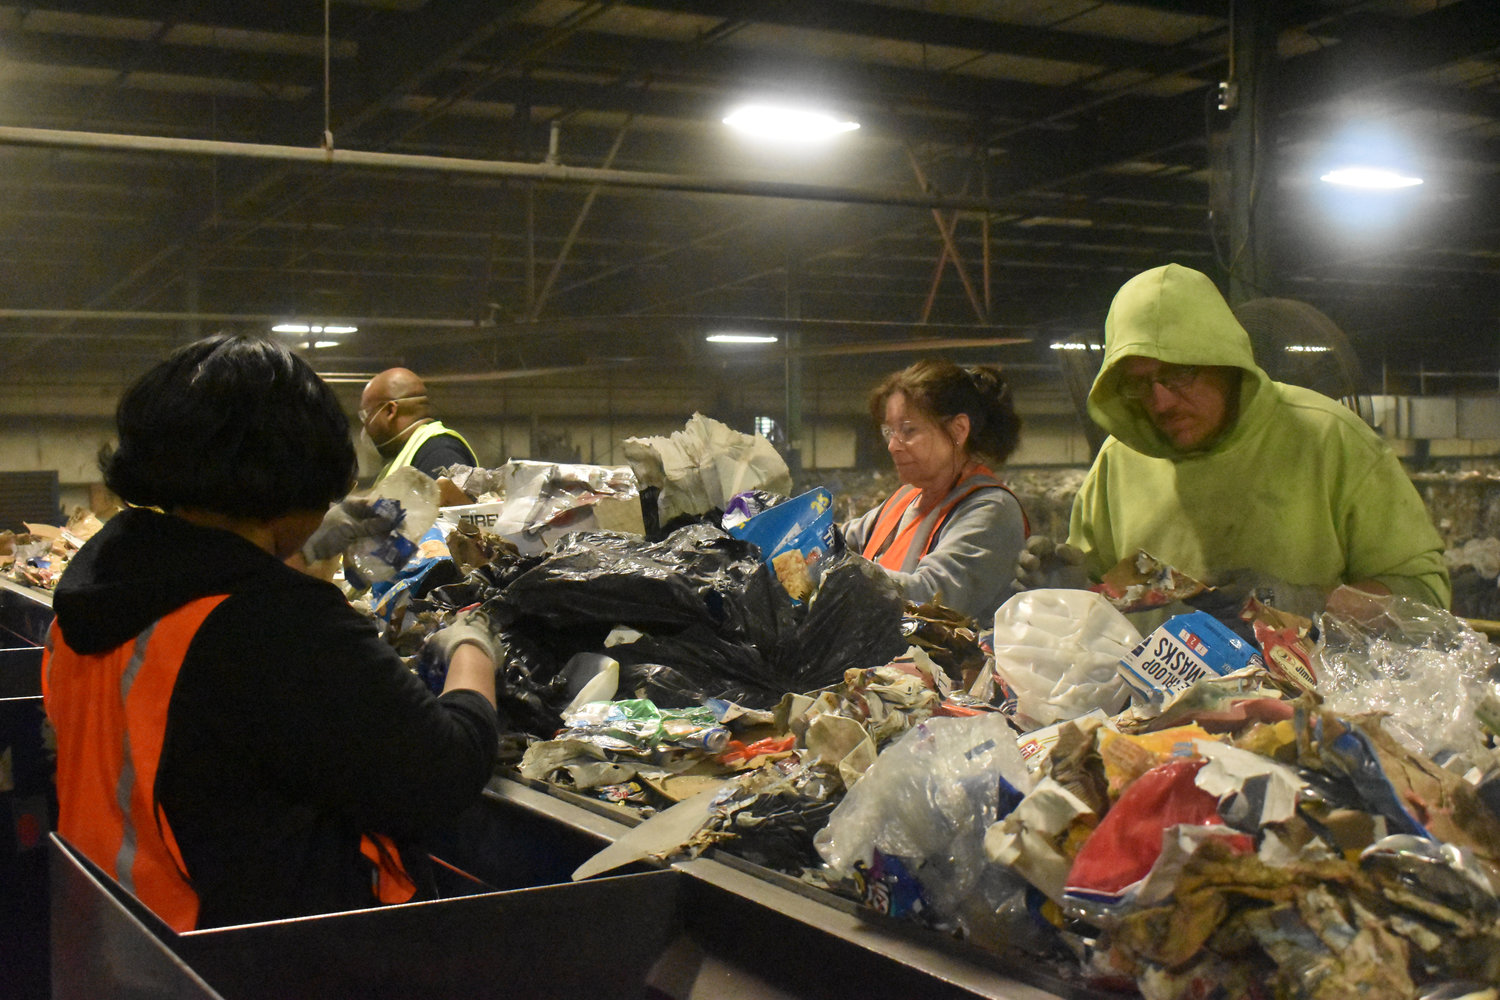 From left, Latasha Parrish-Poteat, Michael Stephens, Gloria Drollinger and William Powell sort through recyclable material stored at the Person County Recycling Center.